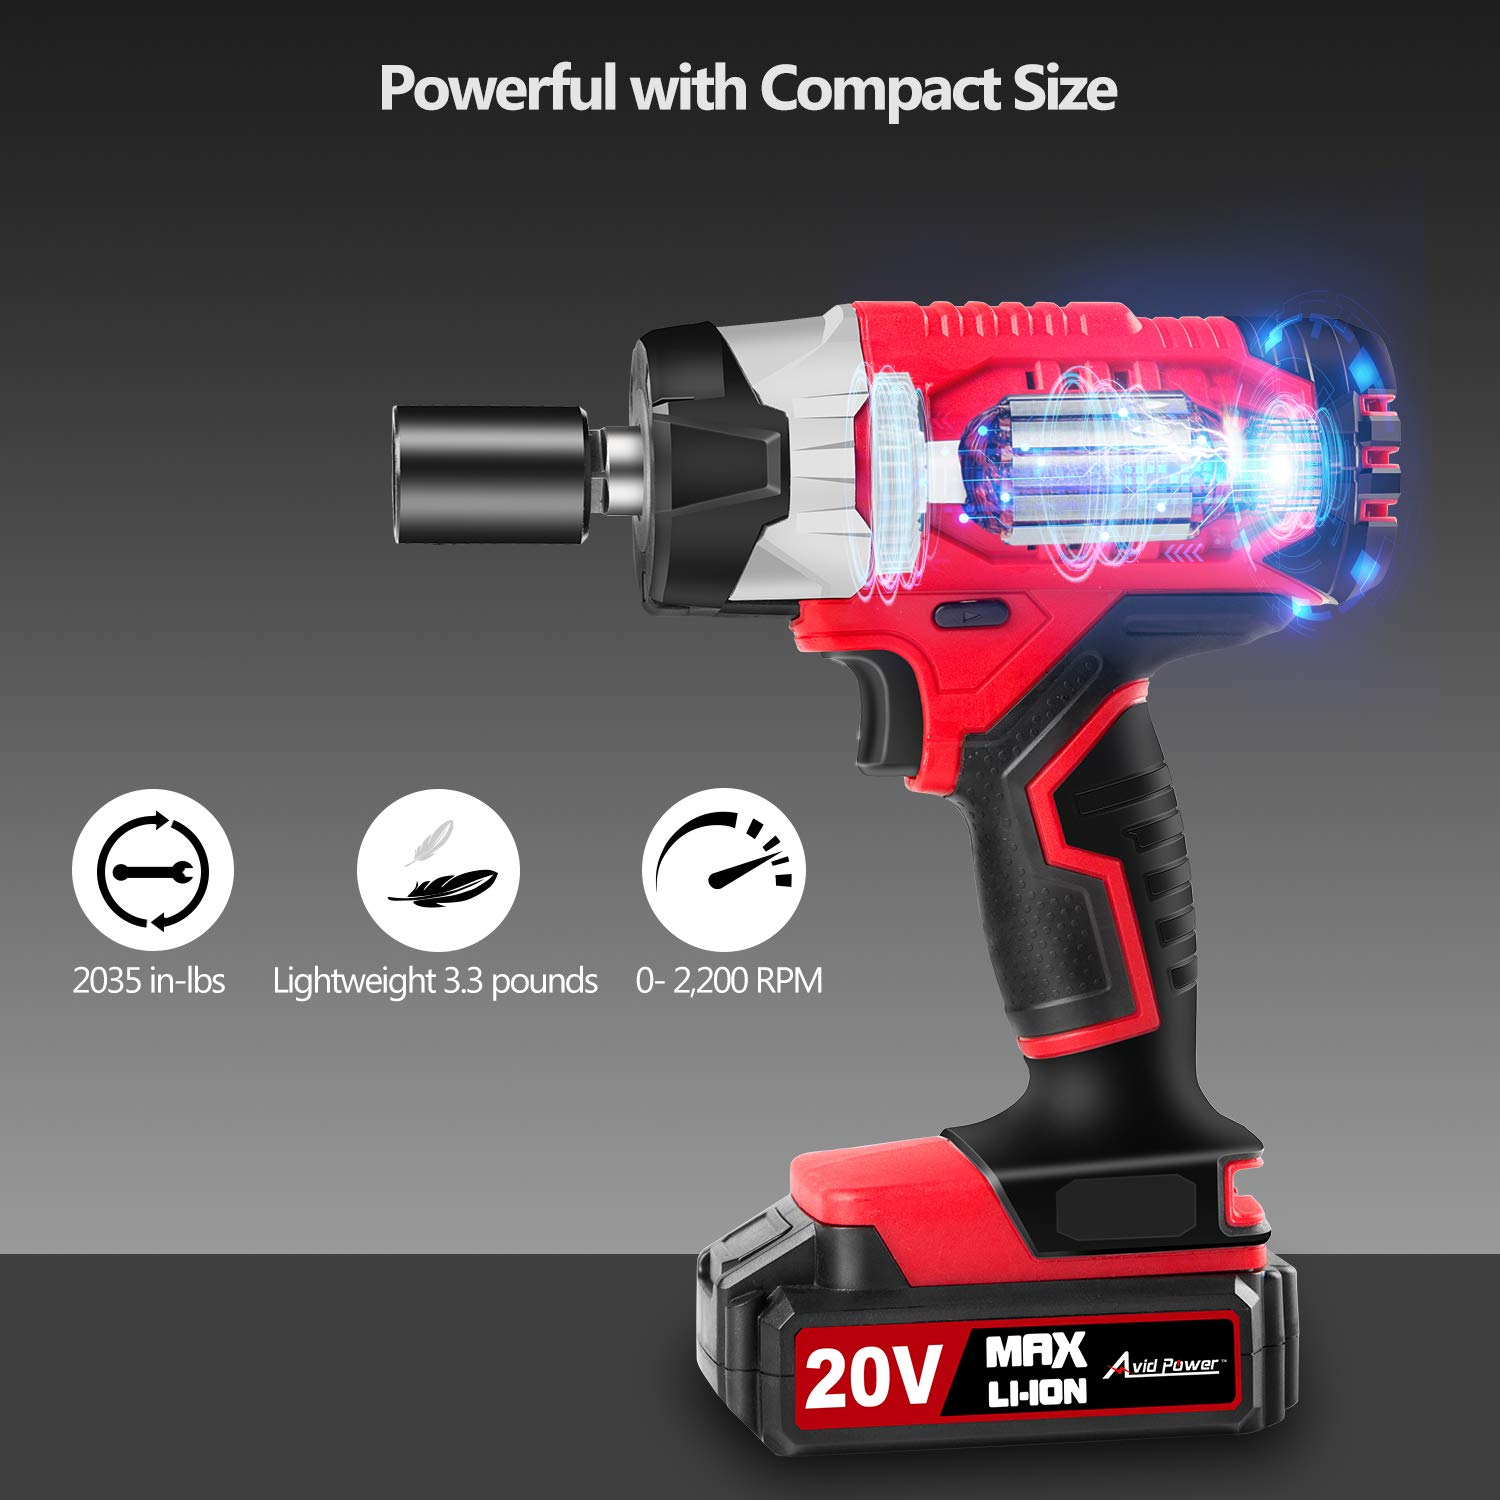 """20V MAX Cordless Impact Wrench with 1/2"""" Chuck, Max Torque 230N.m, 4Pcs Driver Impact Sockets, Tool Bag and 1.5A Li-ion Battery, Avid Power MCIW326 by Avid Power (Image #3)"""